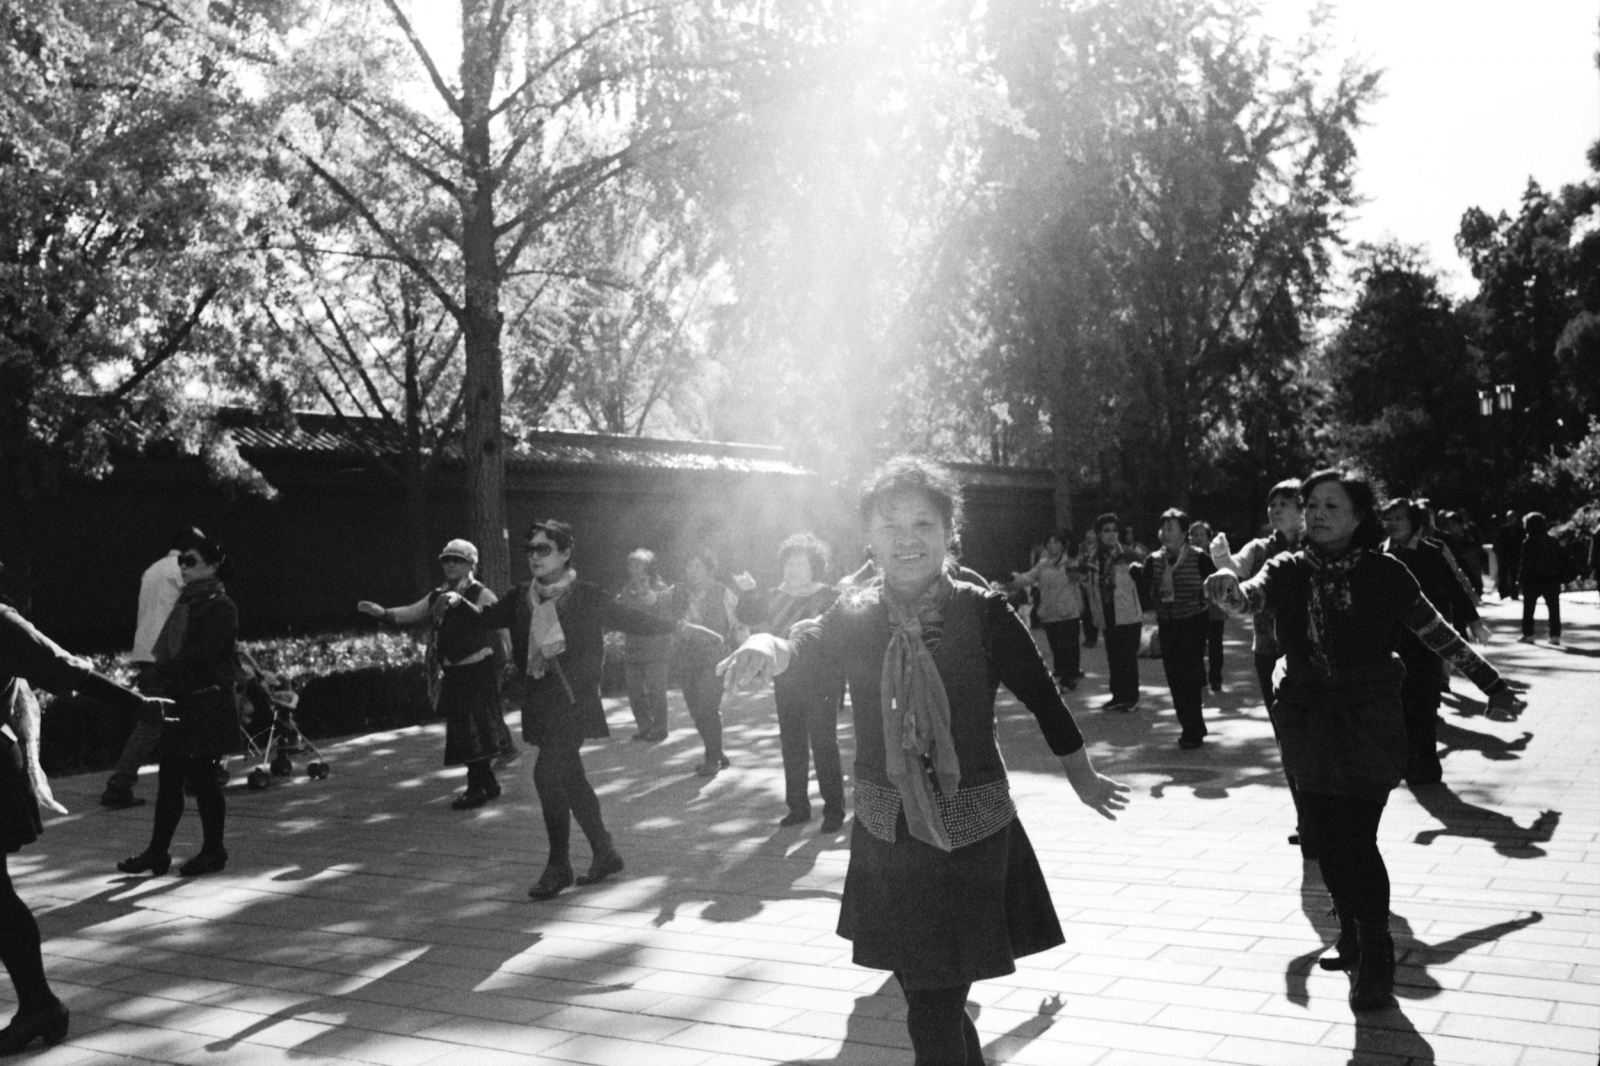 Beijin people dancing for exercise in a morning in Jingshan park. One of the last pictures I made in my last stay in Beijing. Beijing, China. 2015